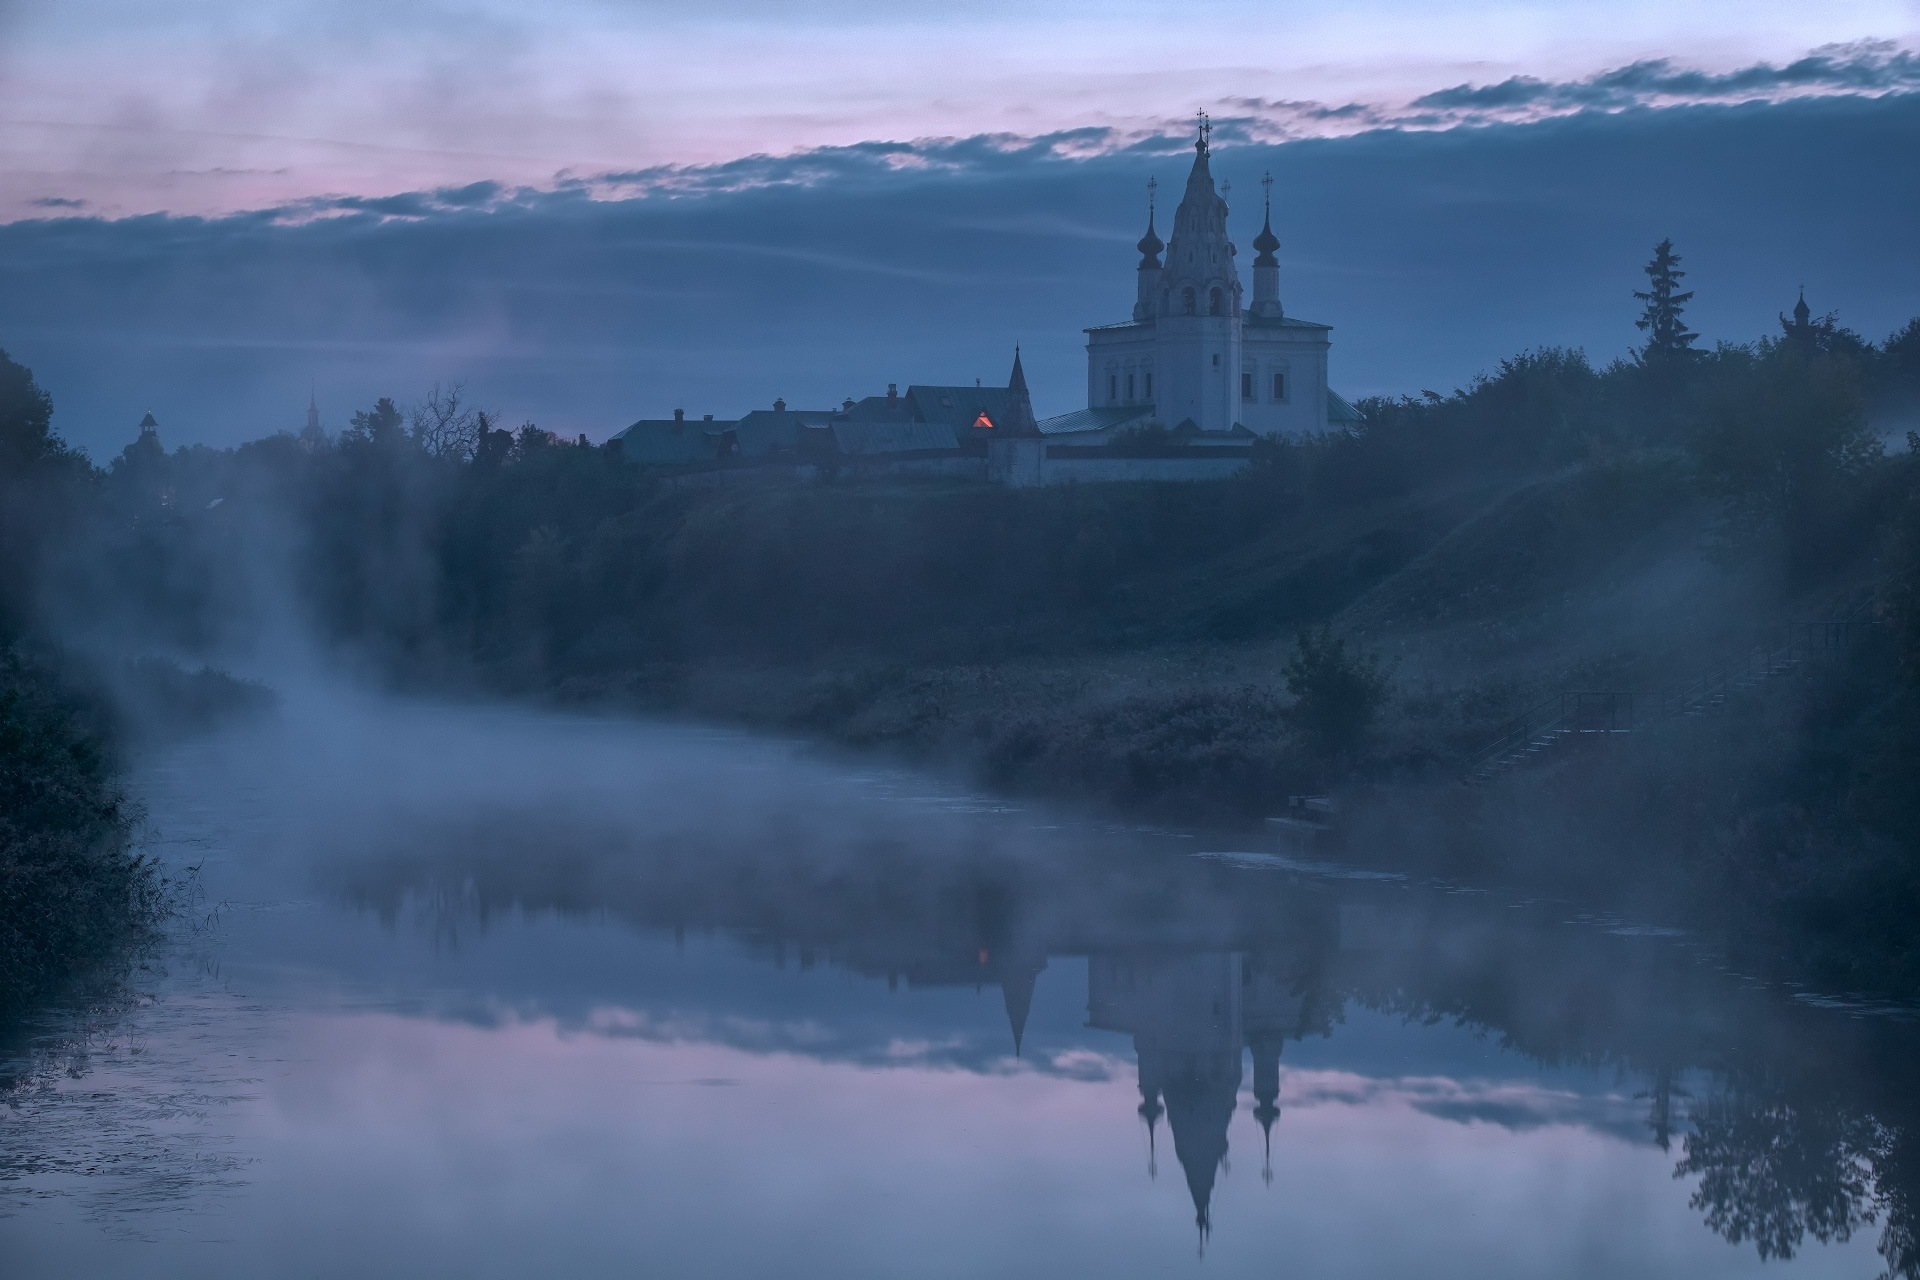 Half an hour before dawn by Andrey Chizh